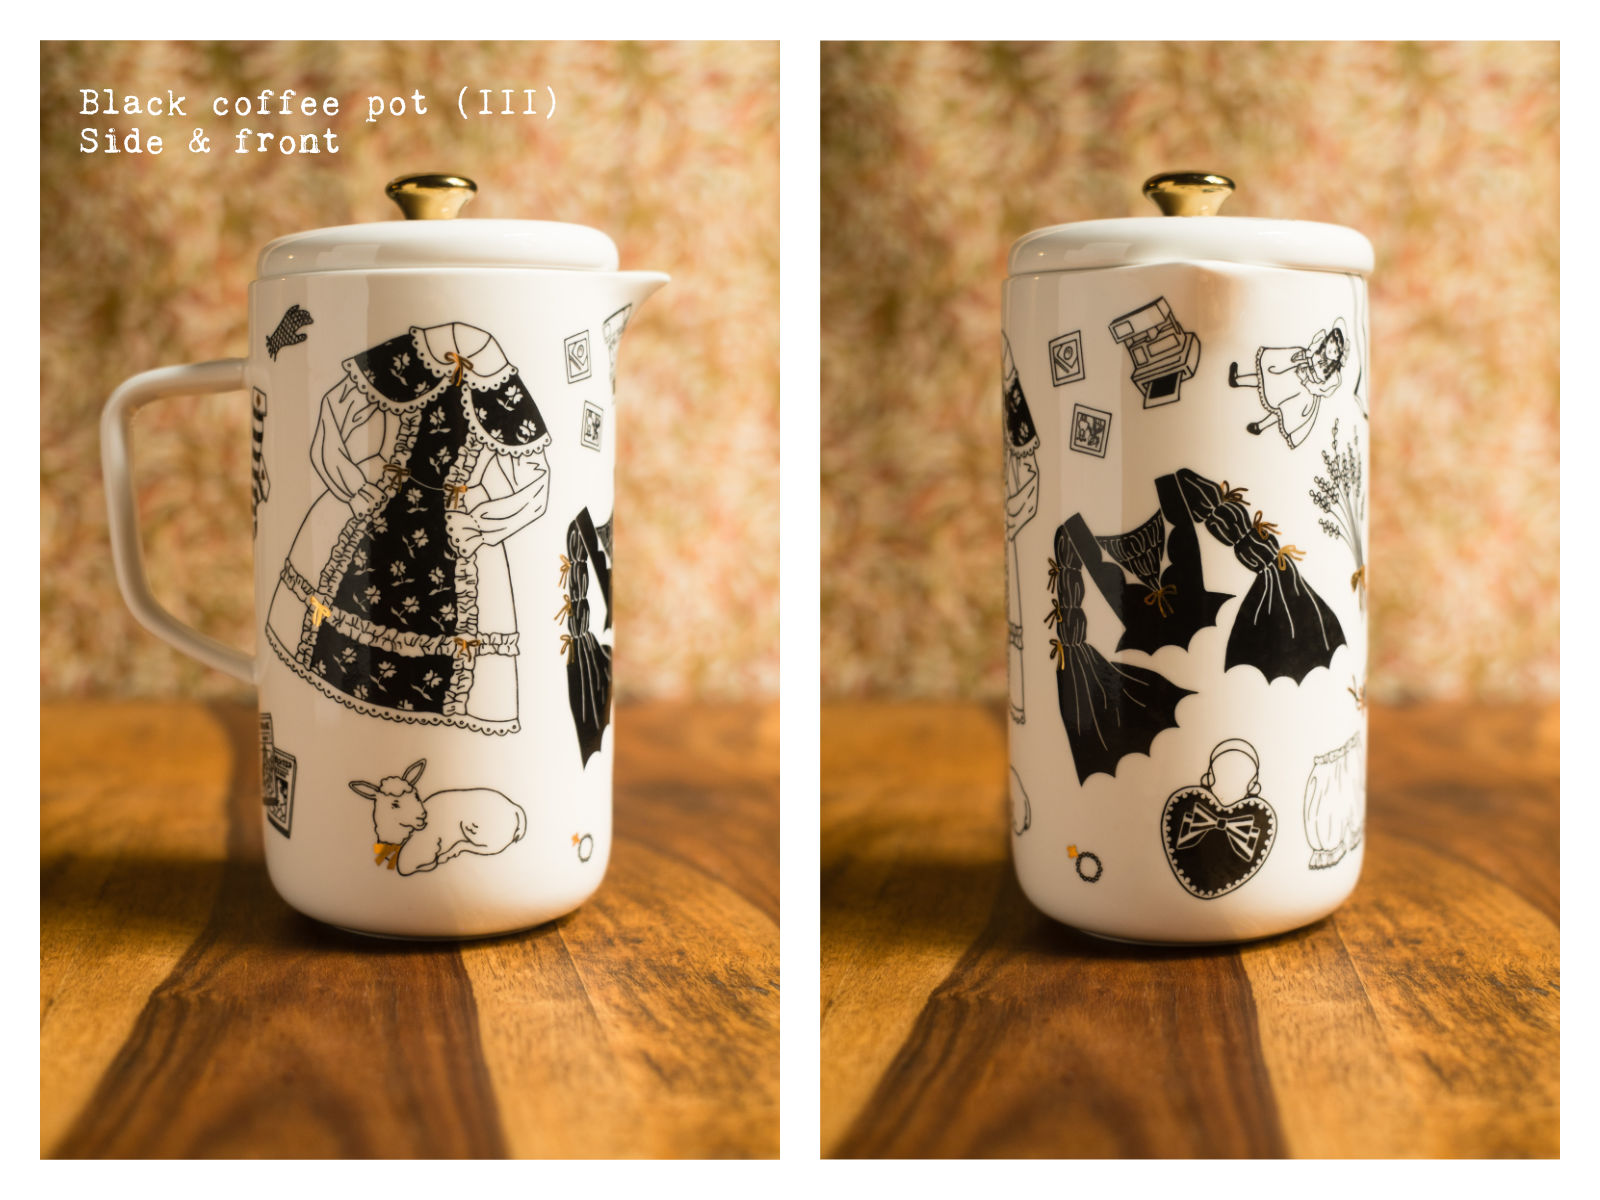 """Side & front of a black coffee pot (III) from """"Oldschool Lolita"""", a collection of painted porcelains by messalyn."""